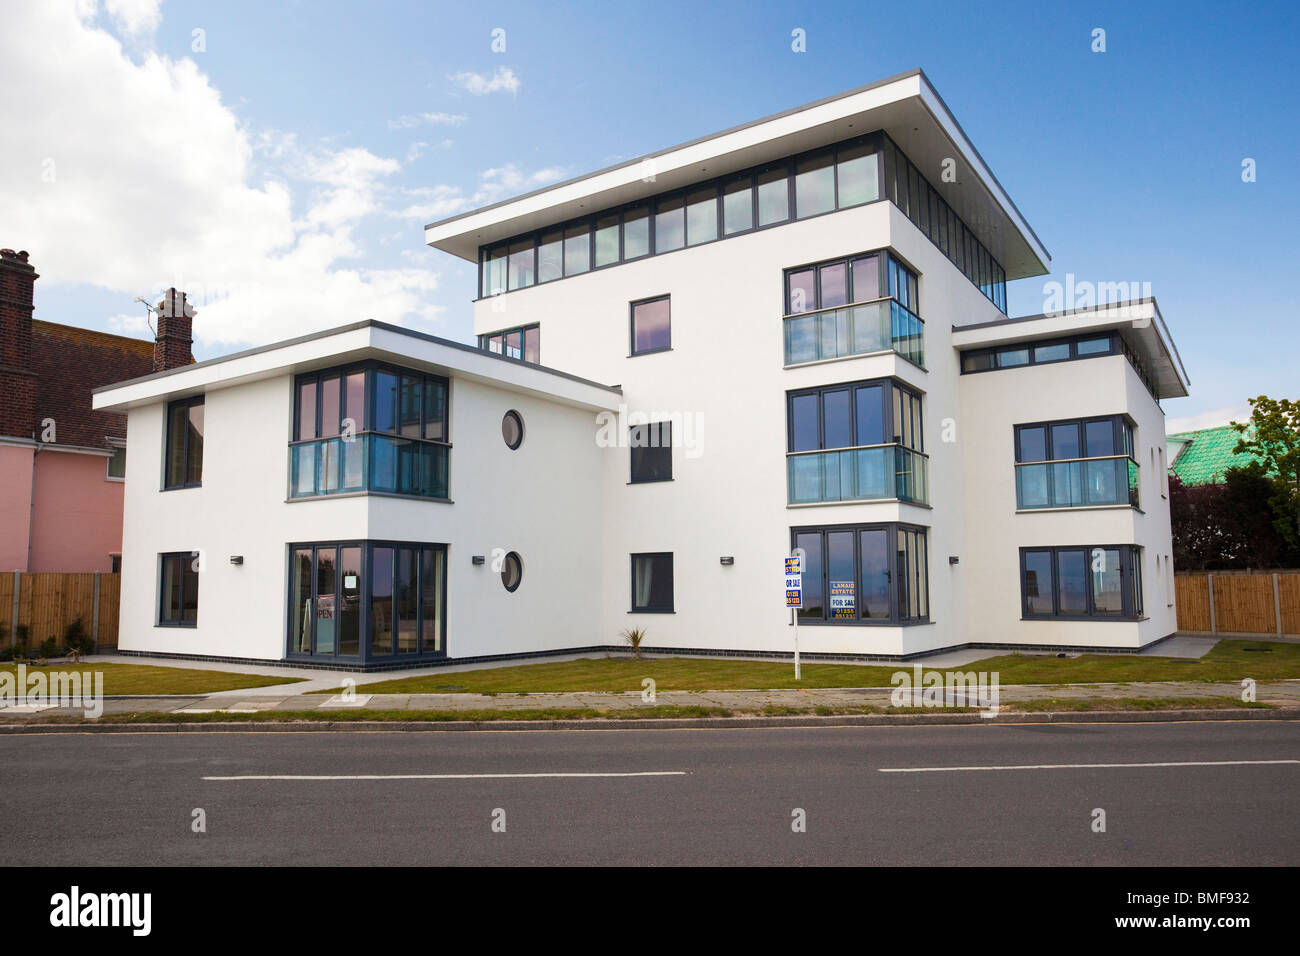 Art Deco Stile Modern Art Deco Style House At Frinton On Sea Essex Uk